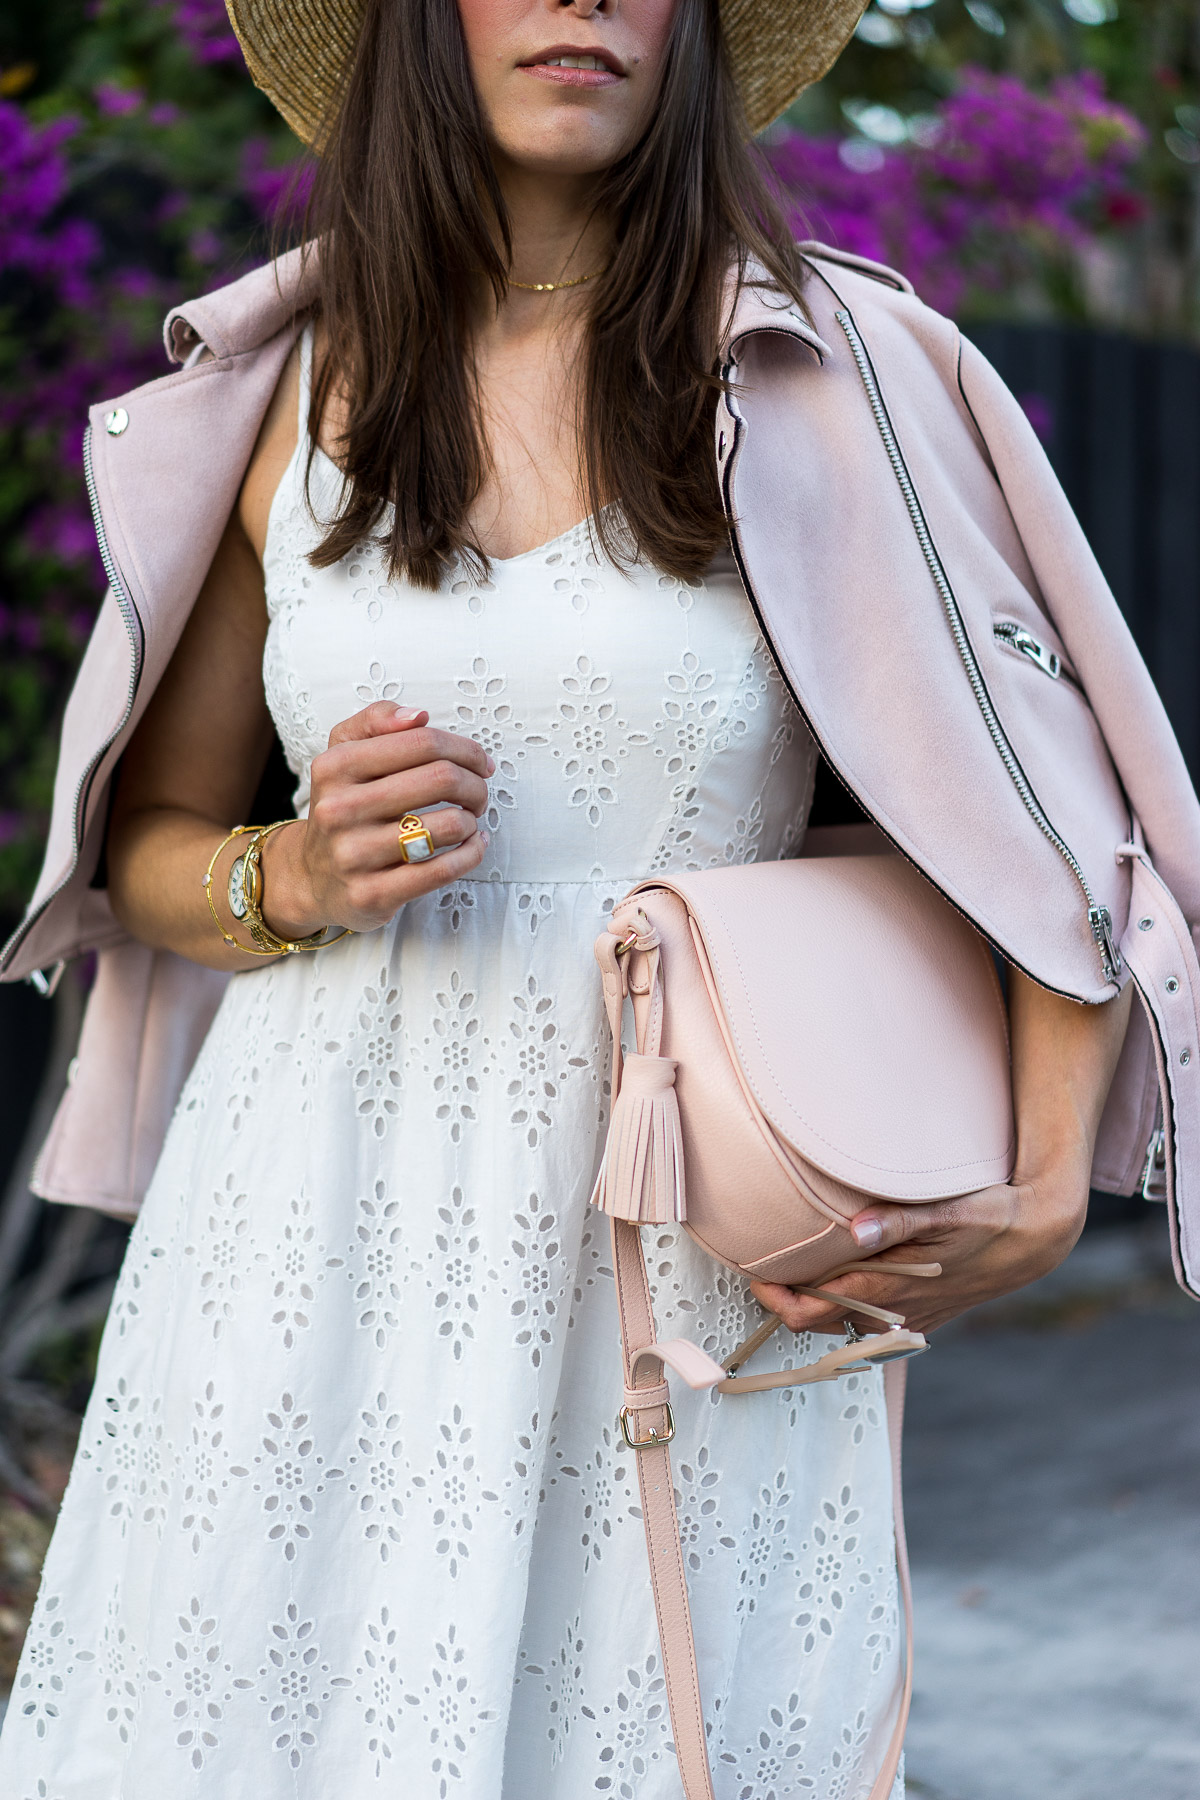 A Glam Lifestyle blogger styles Old Navy midi dress with blush saddle bag to #SayHi to Spring